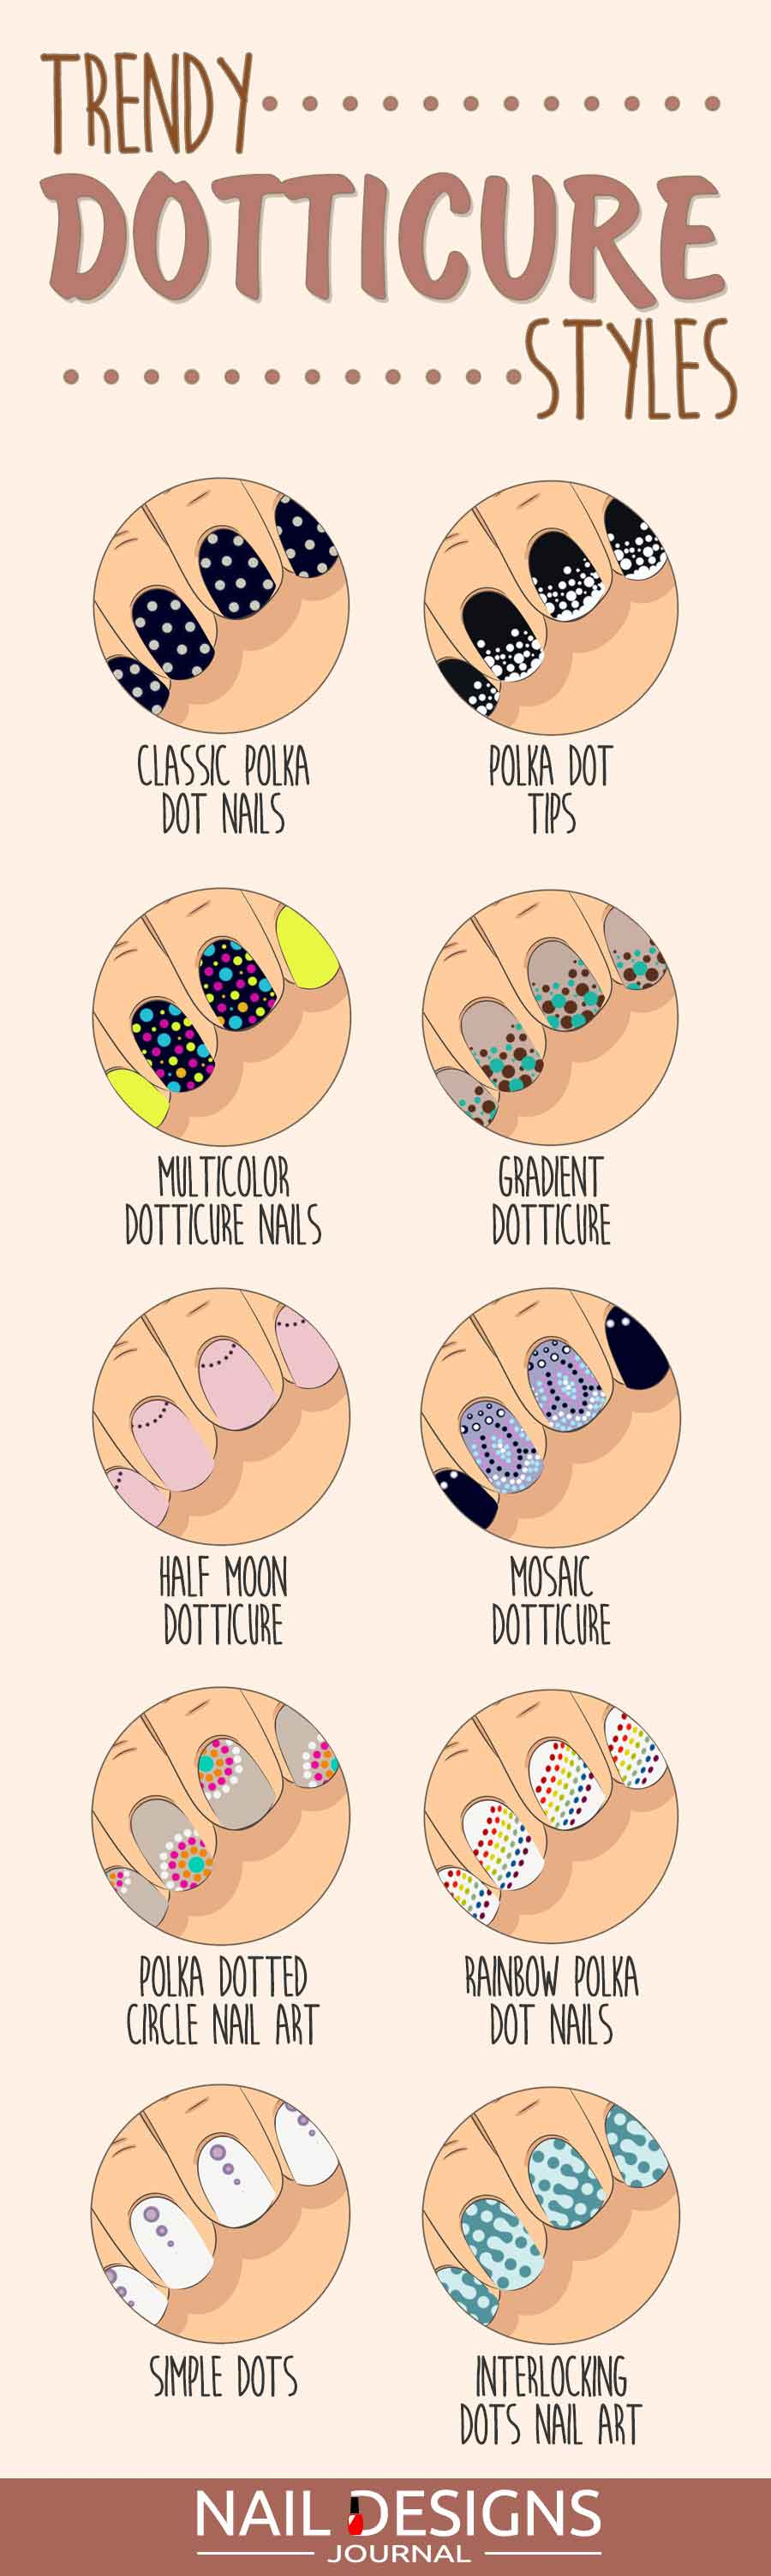 Dotticure Styles Infographic